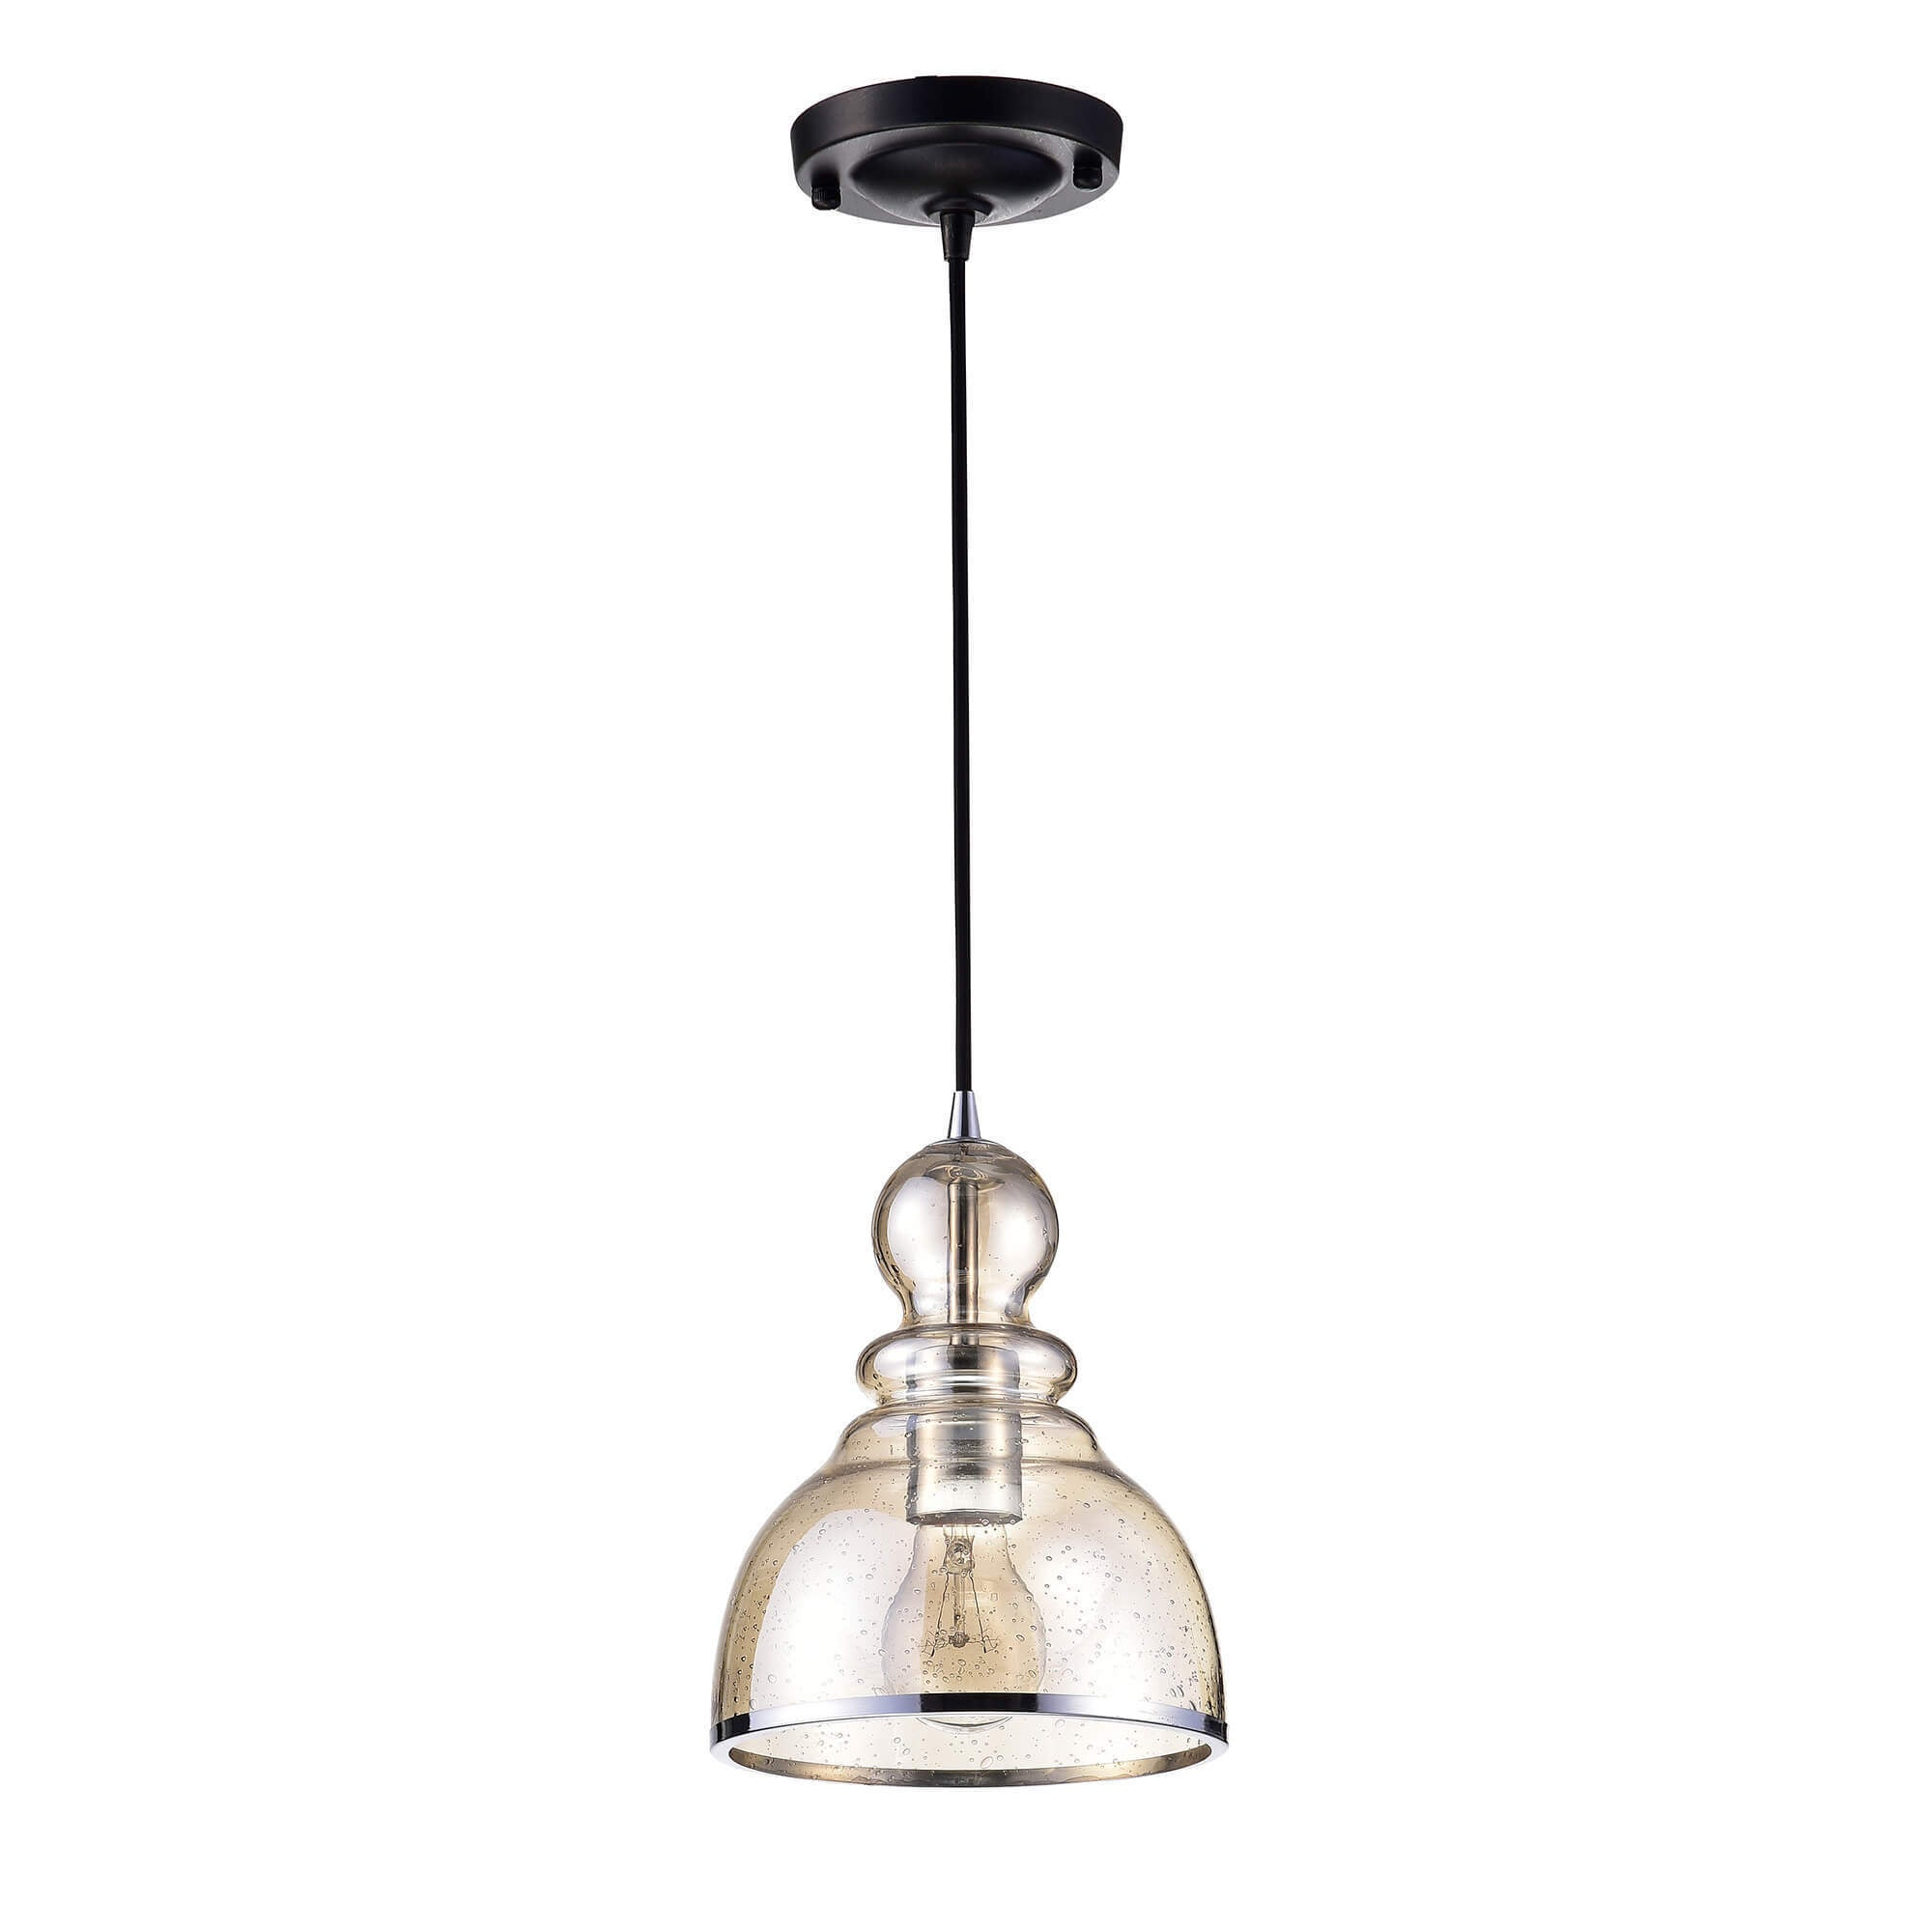 glass light clear black wide finish kichler in chrome pendant mini item and capitol lighting cfm everly inch shown